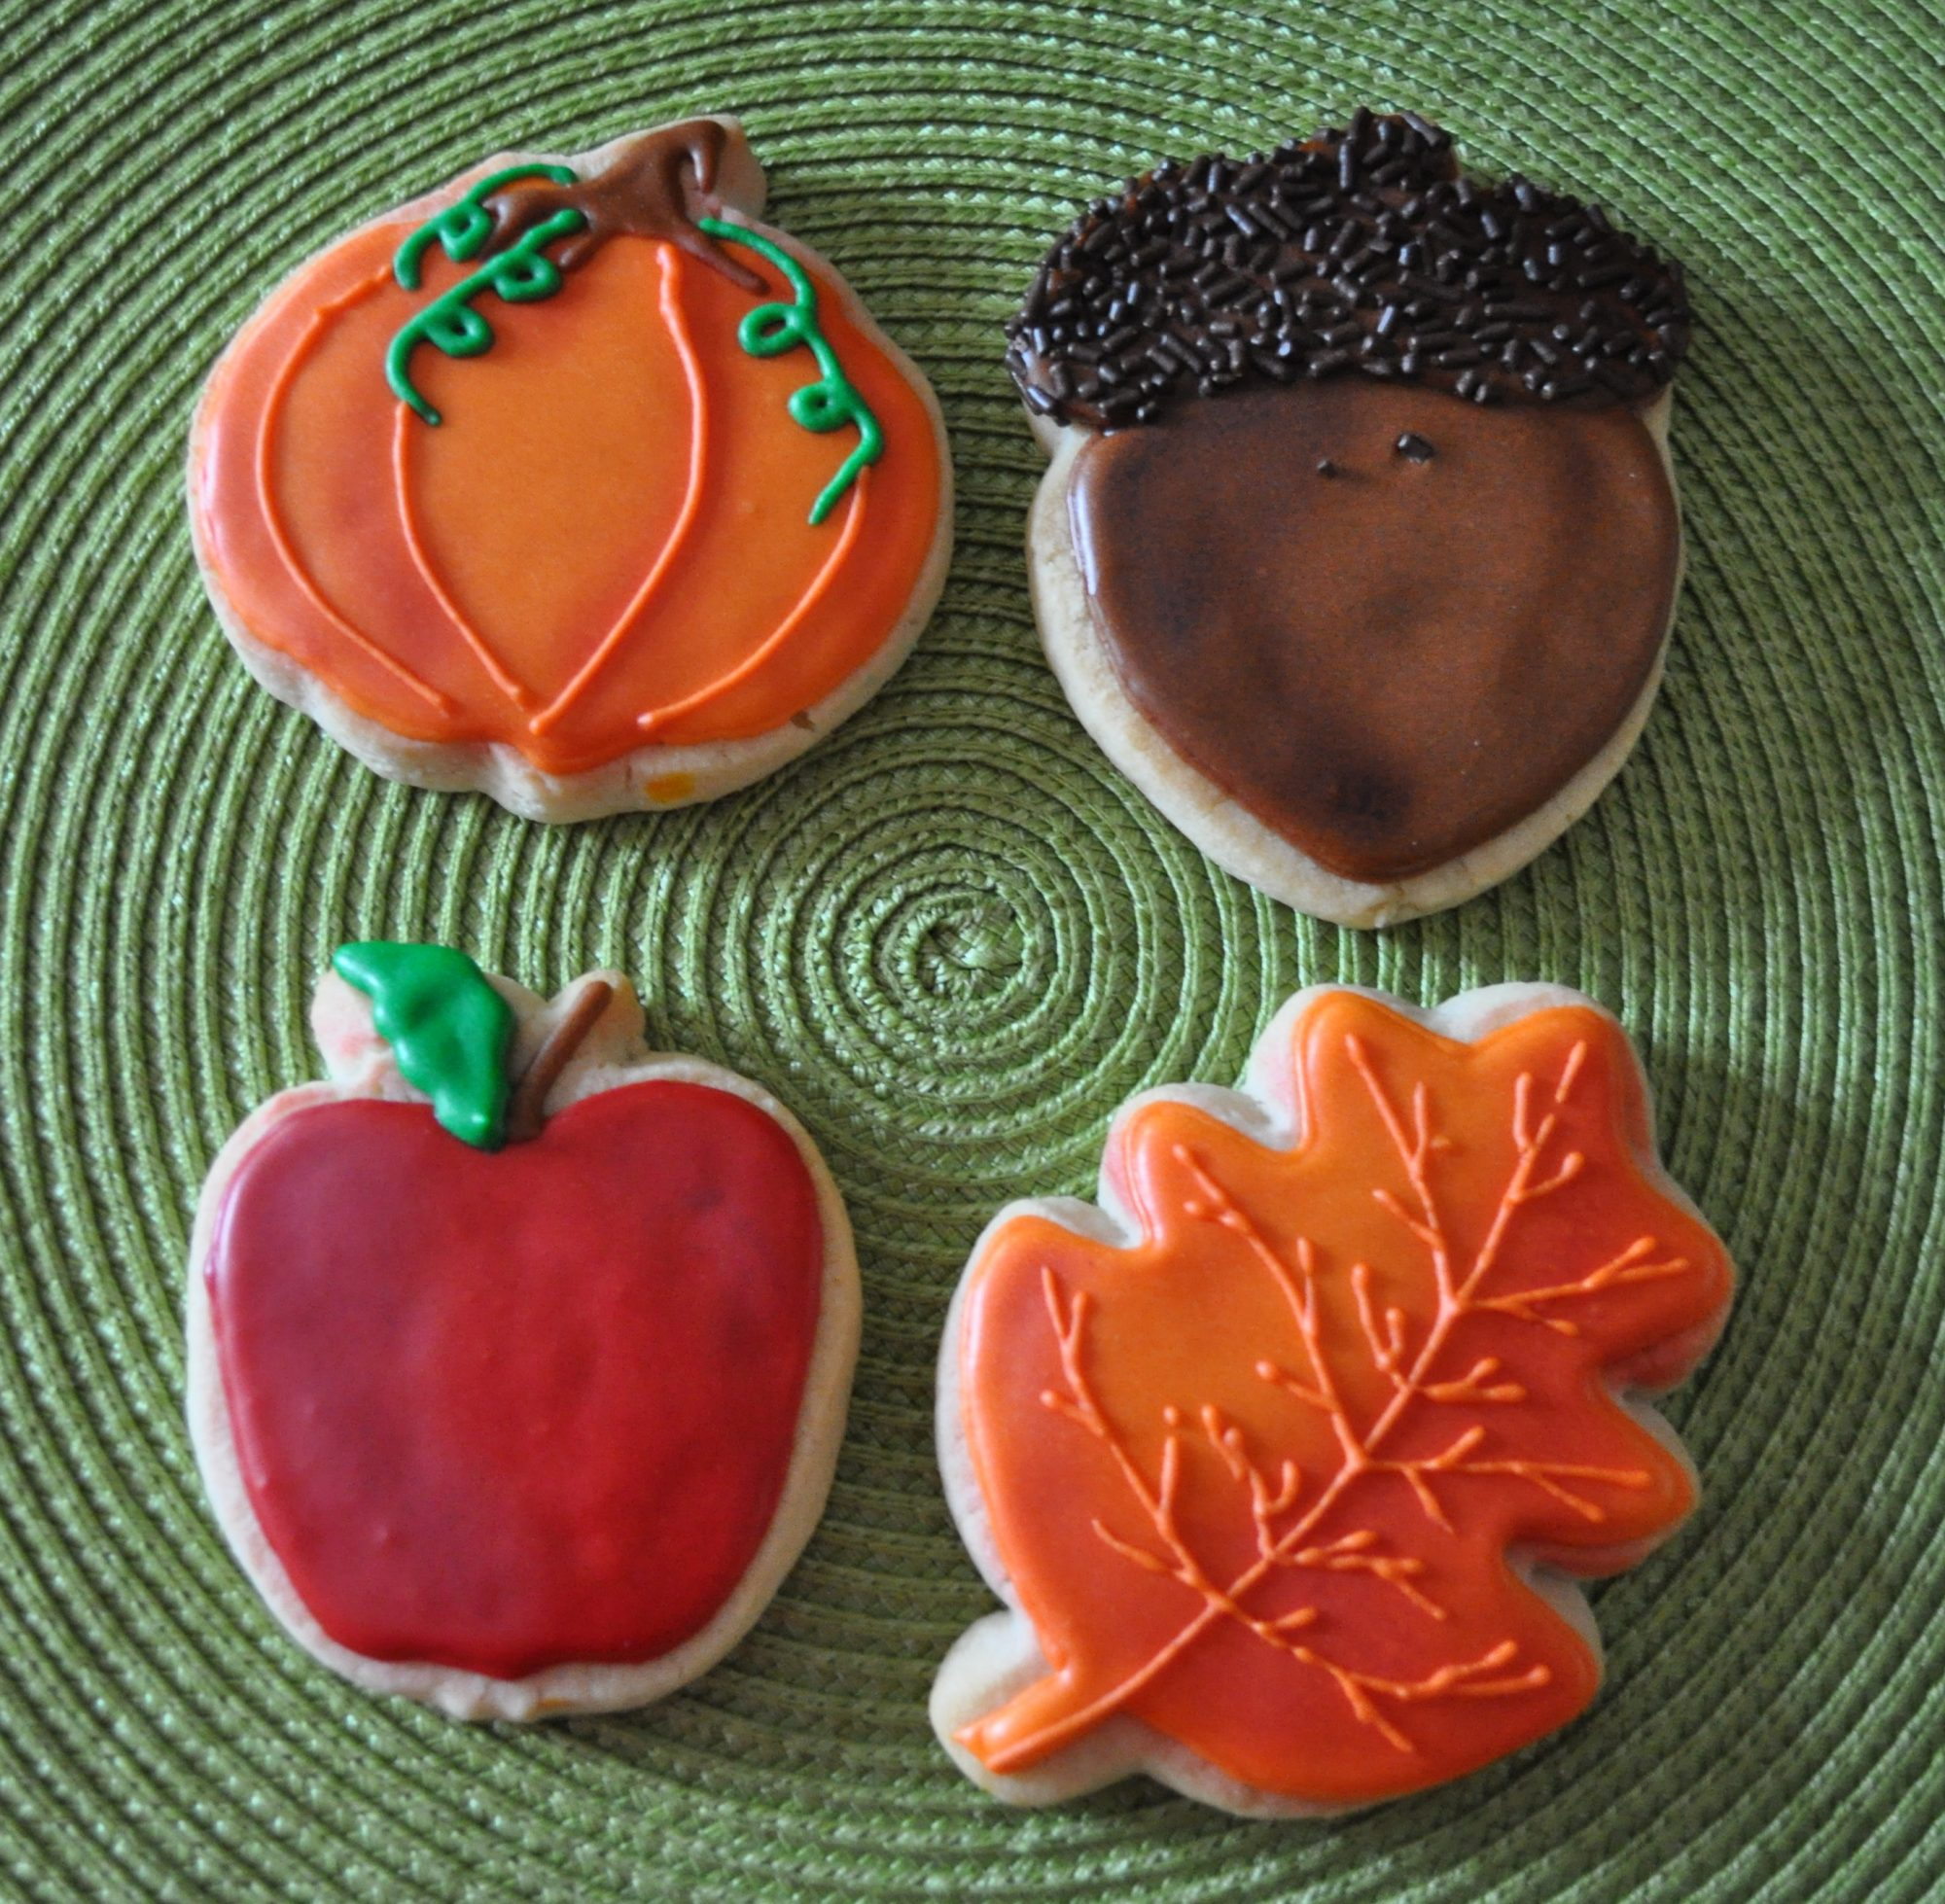 Fall motif cookies on a green placemat: an orange pumpkin, a brown acorn with sprinkles on its cap, a red apple with green leaf, and an orange oak leaf